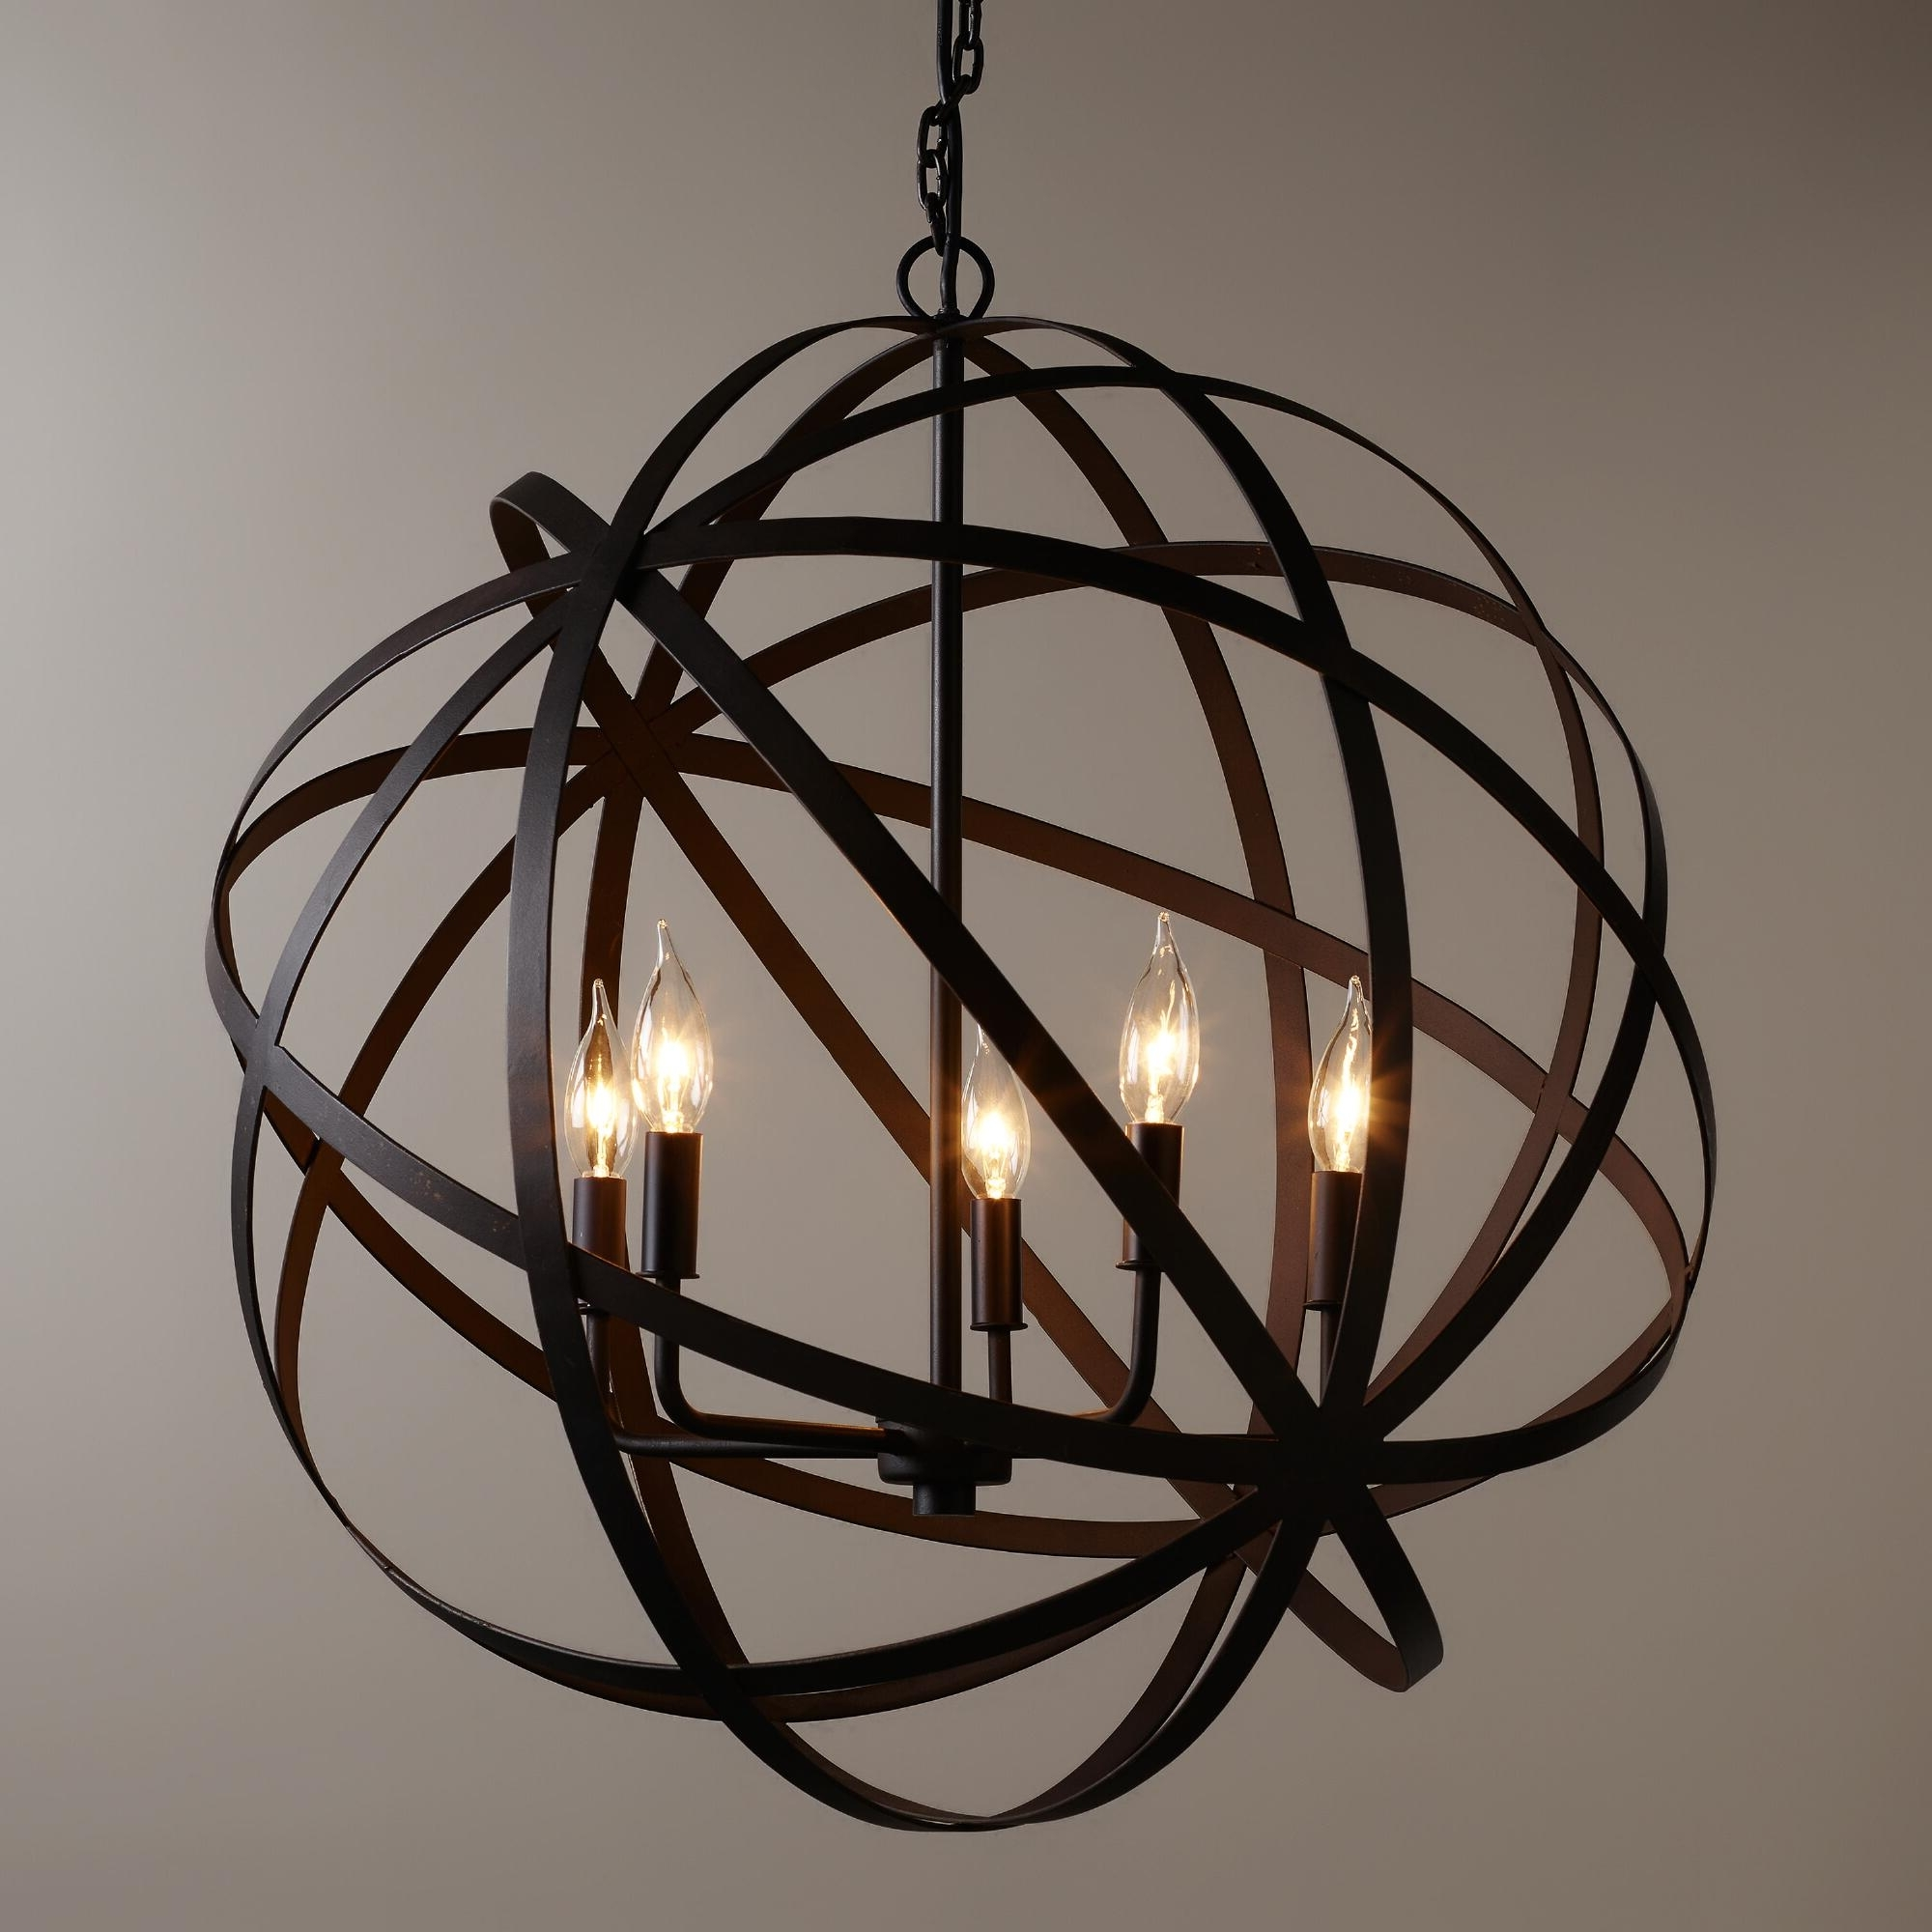 Light : Creative Orb Chandelier About Interior Designing Home Ideas Pertaining To Well Known Metal Chandeliers (View 5 of 15)